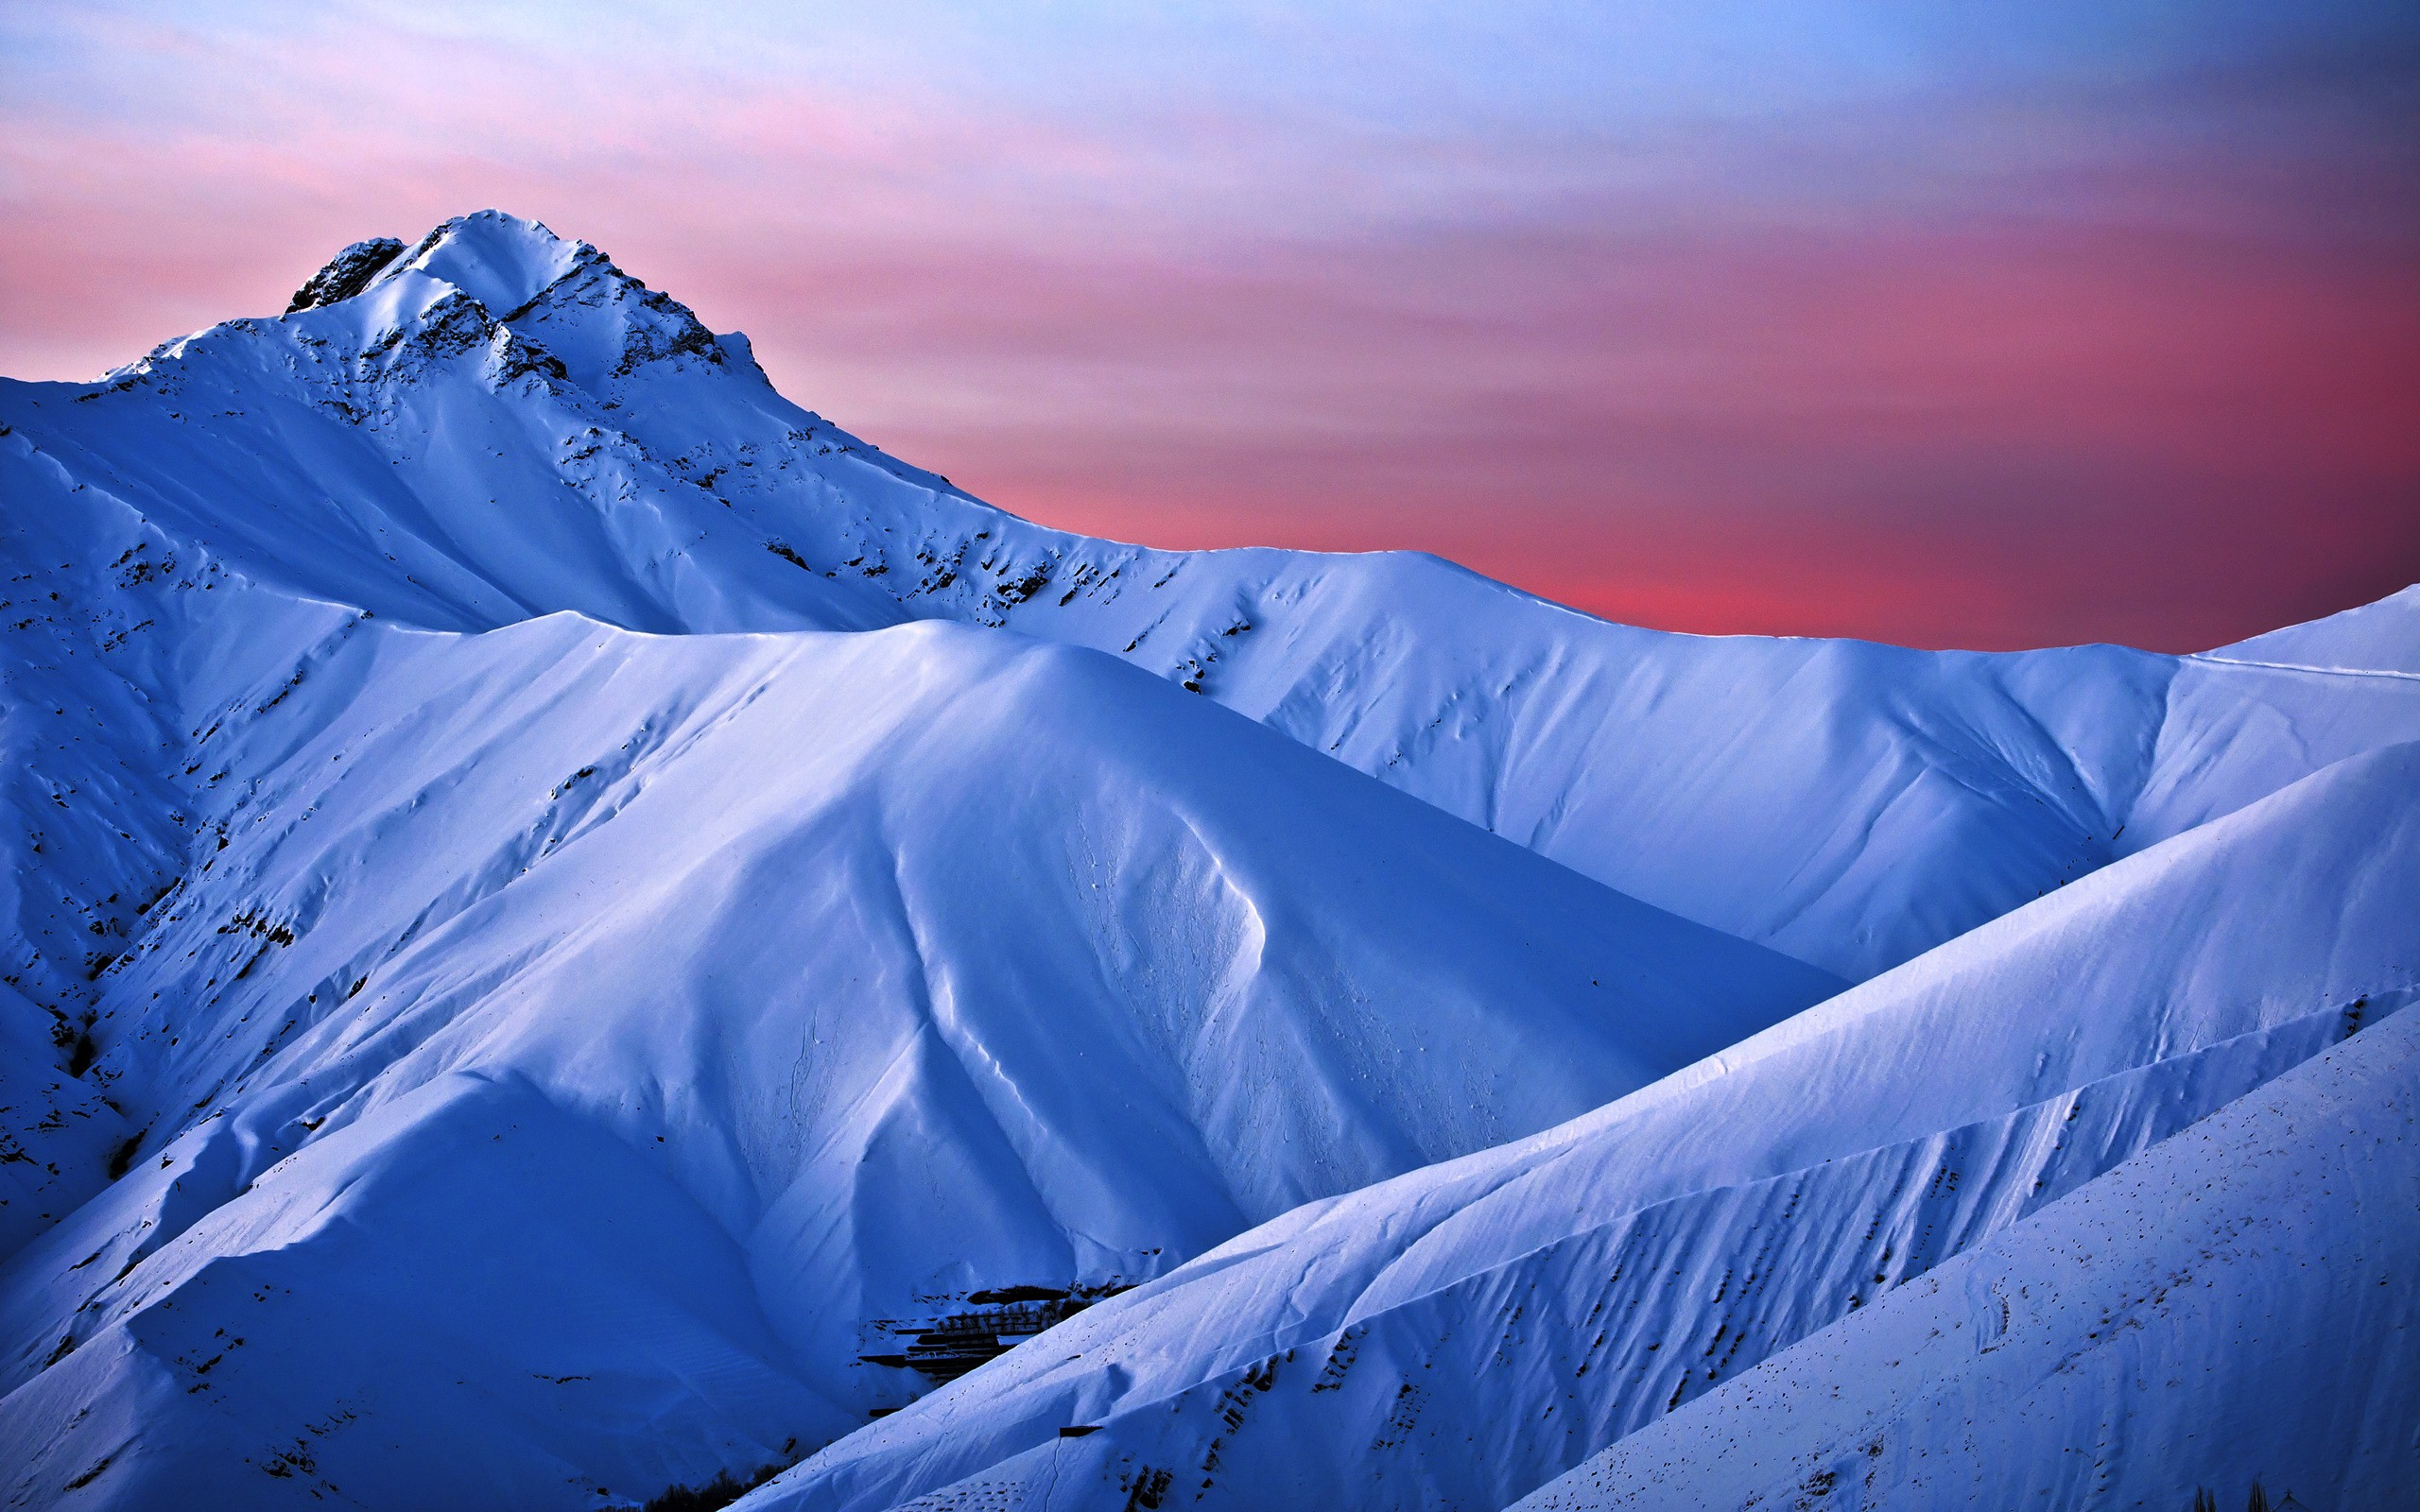 Snowy_Mountains_Range_in_New_South_Wales_Australia_Wallpaper